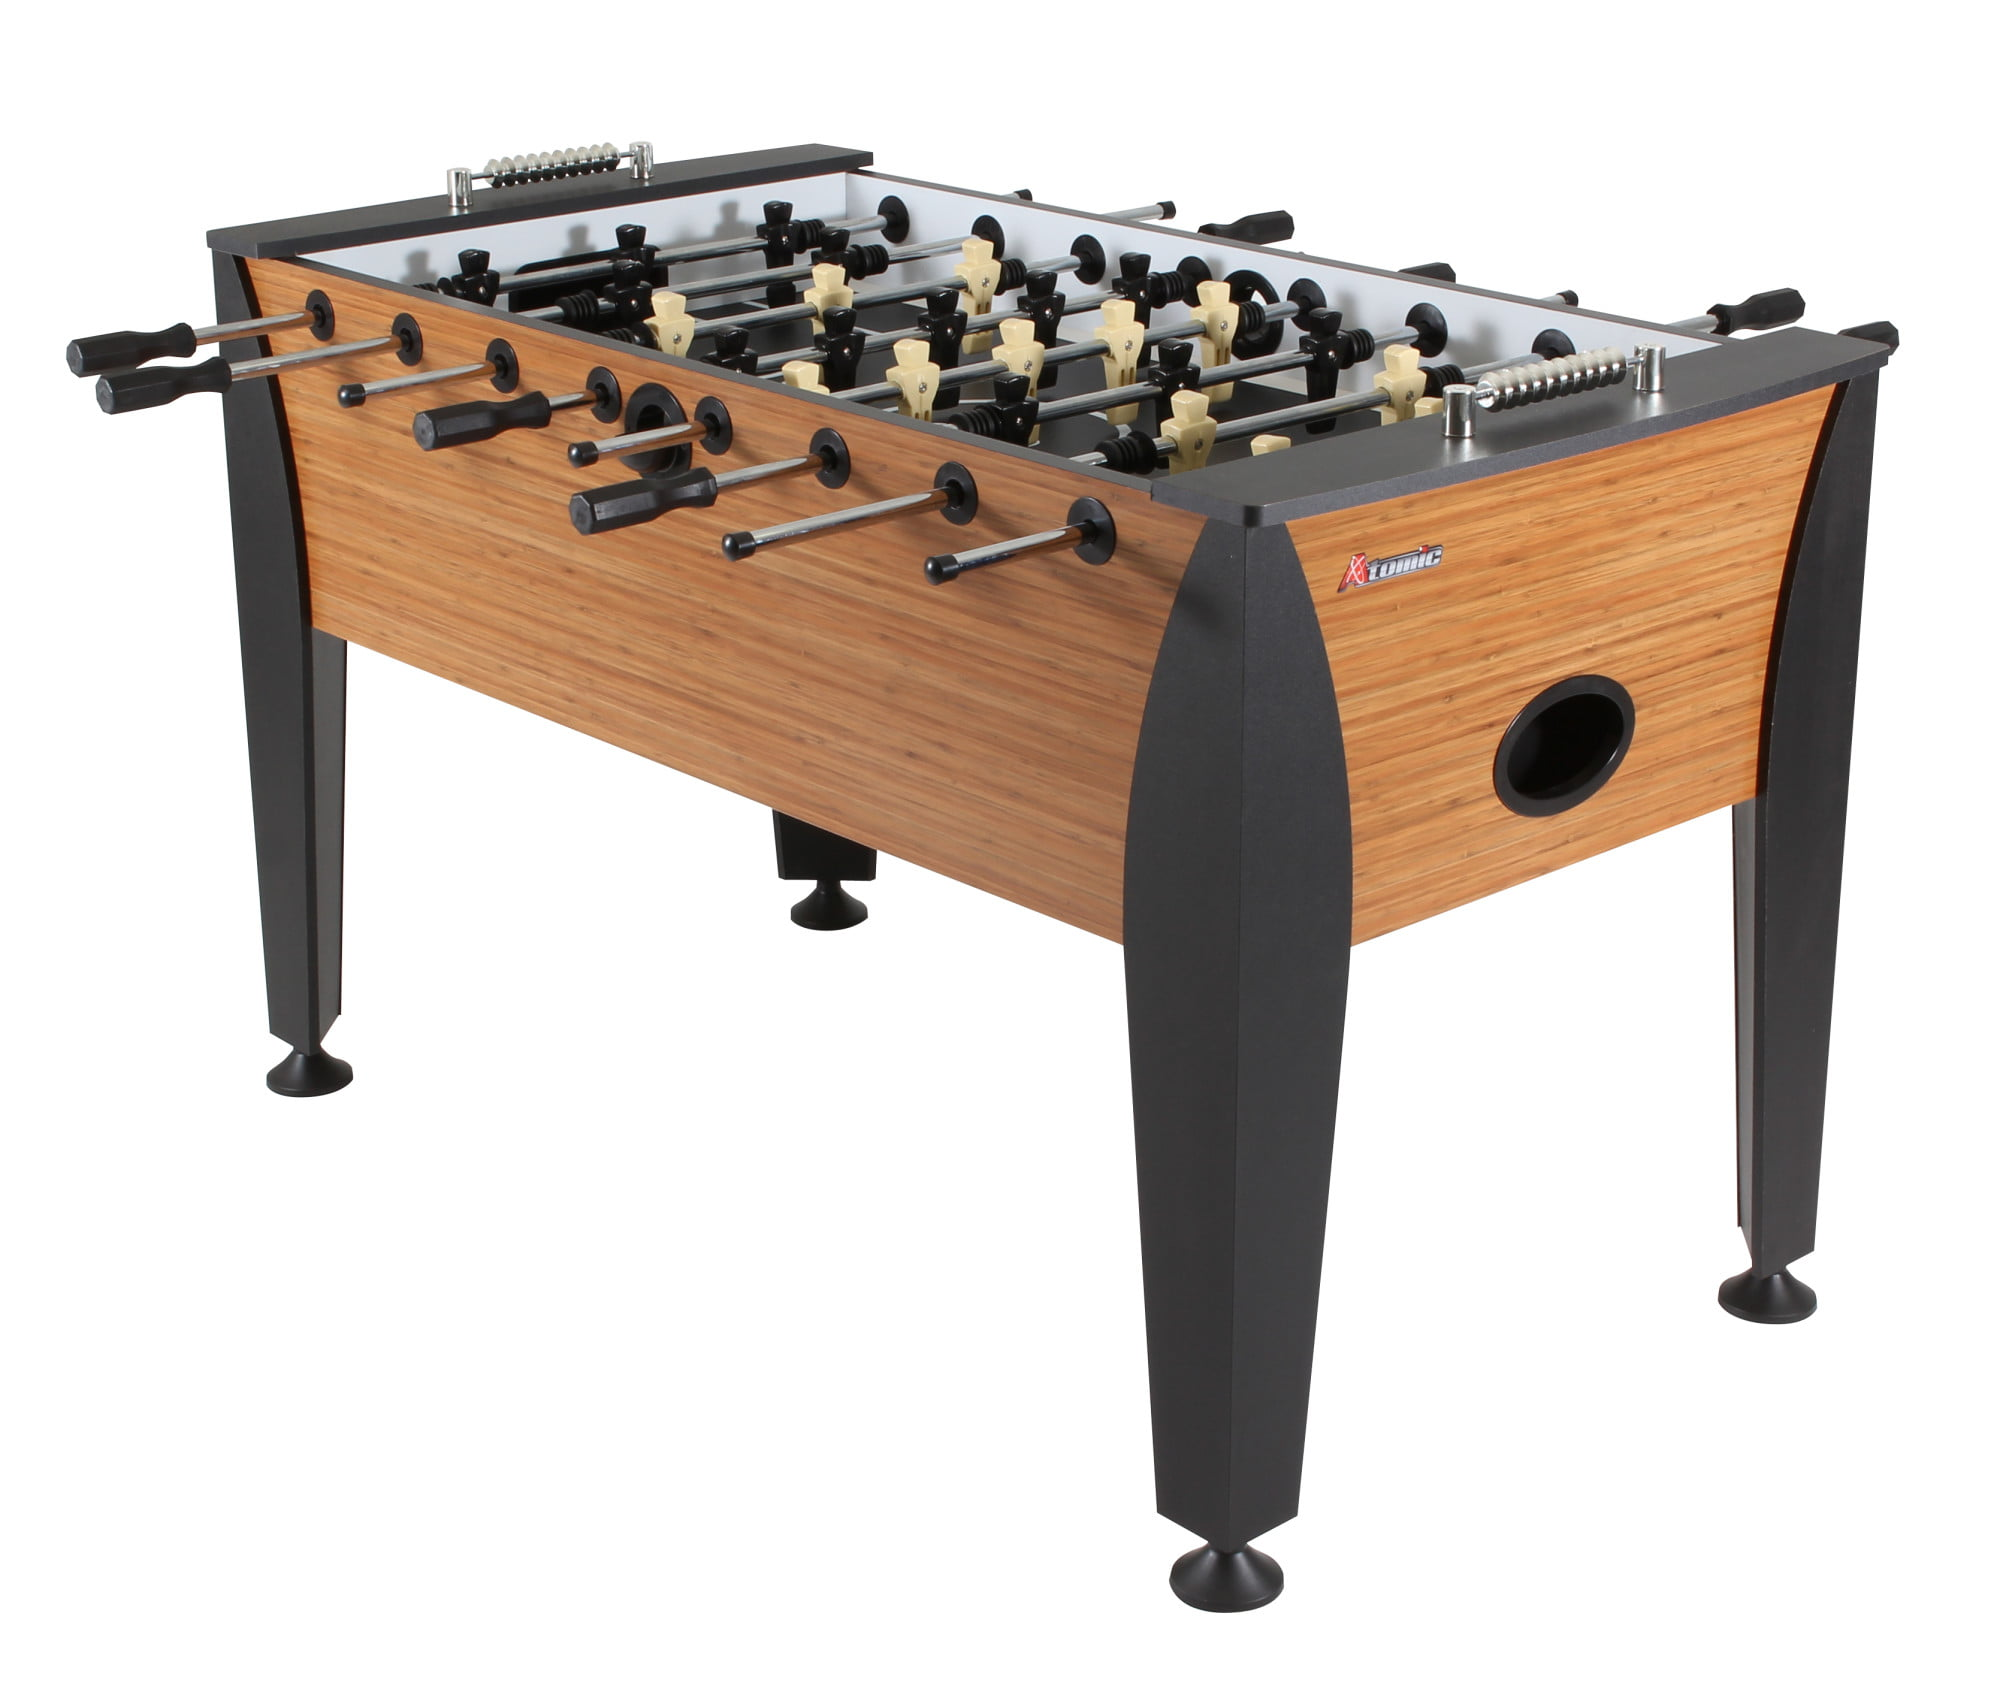 "Atomic Pro Force 56"" Foosball Table by Atomic"